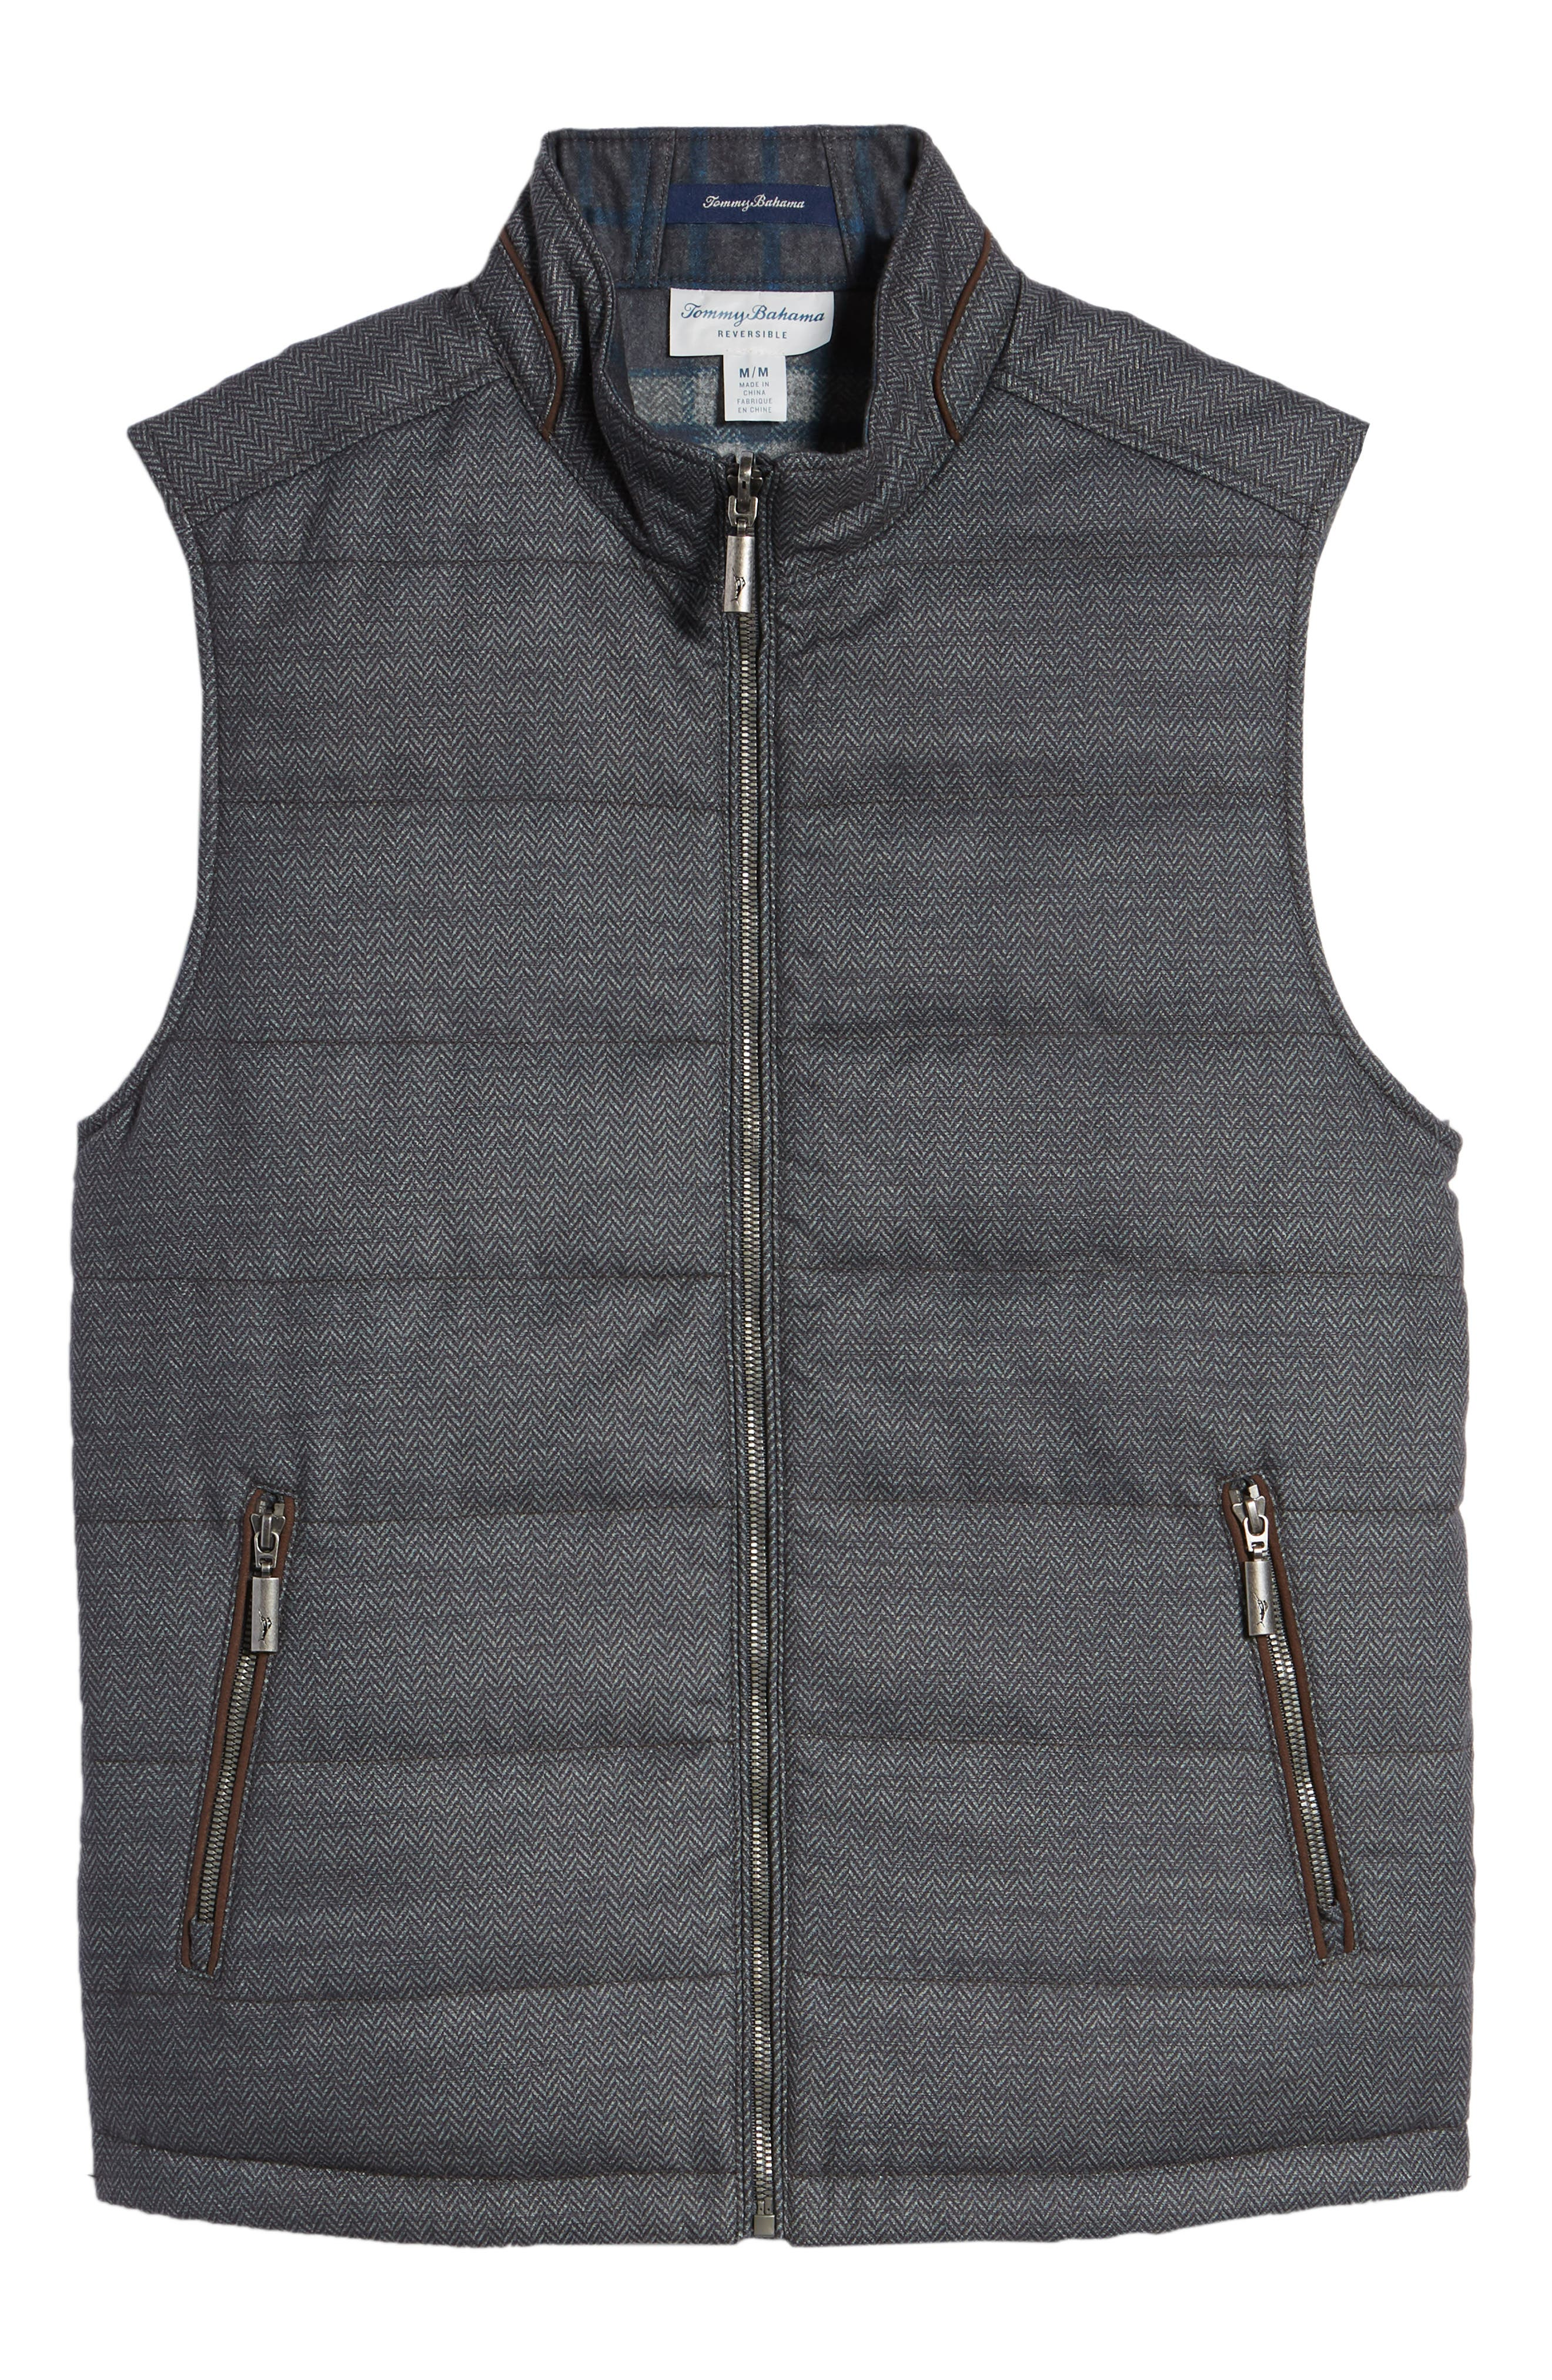 Dublin Duo Reversible Quilted Vest,                             Alternate thumbnail 6, color,                             SHADOW